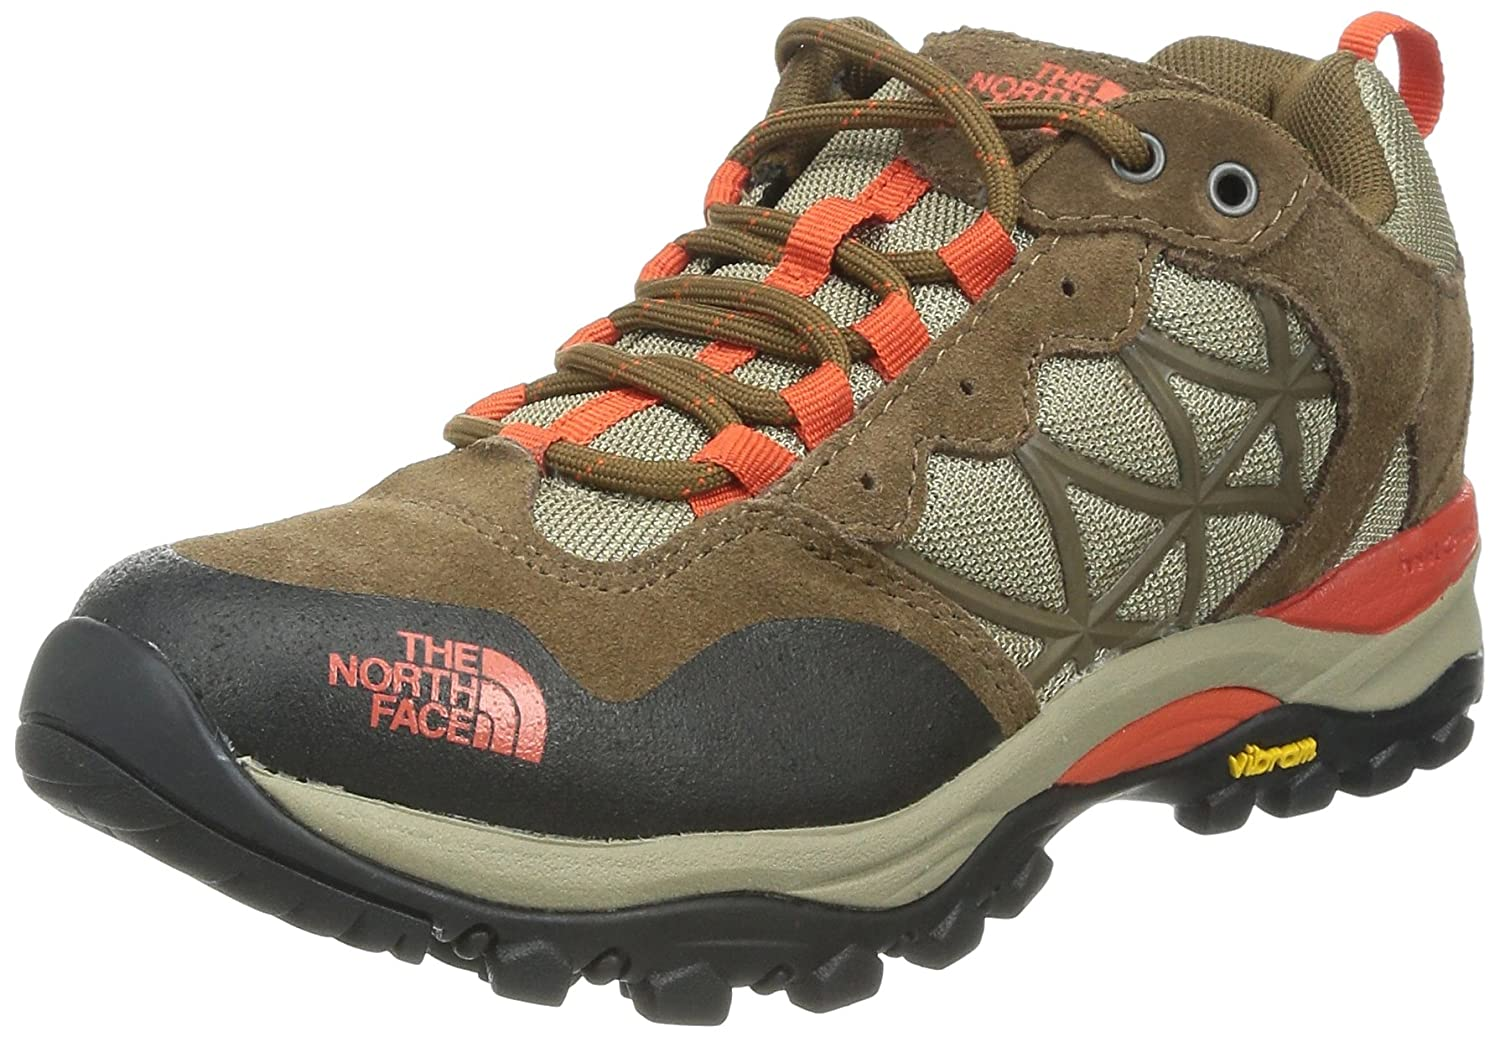 The North Face Women's Storm Low Top Fabric Hiking Shoe B00E5LUIDY 7 B(M) US|Sepia Brown/Spicy Orange